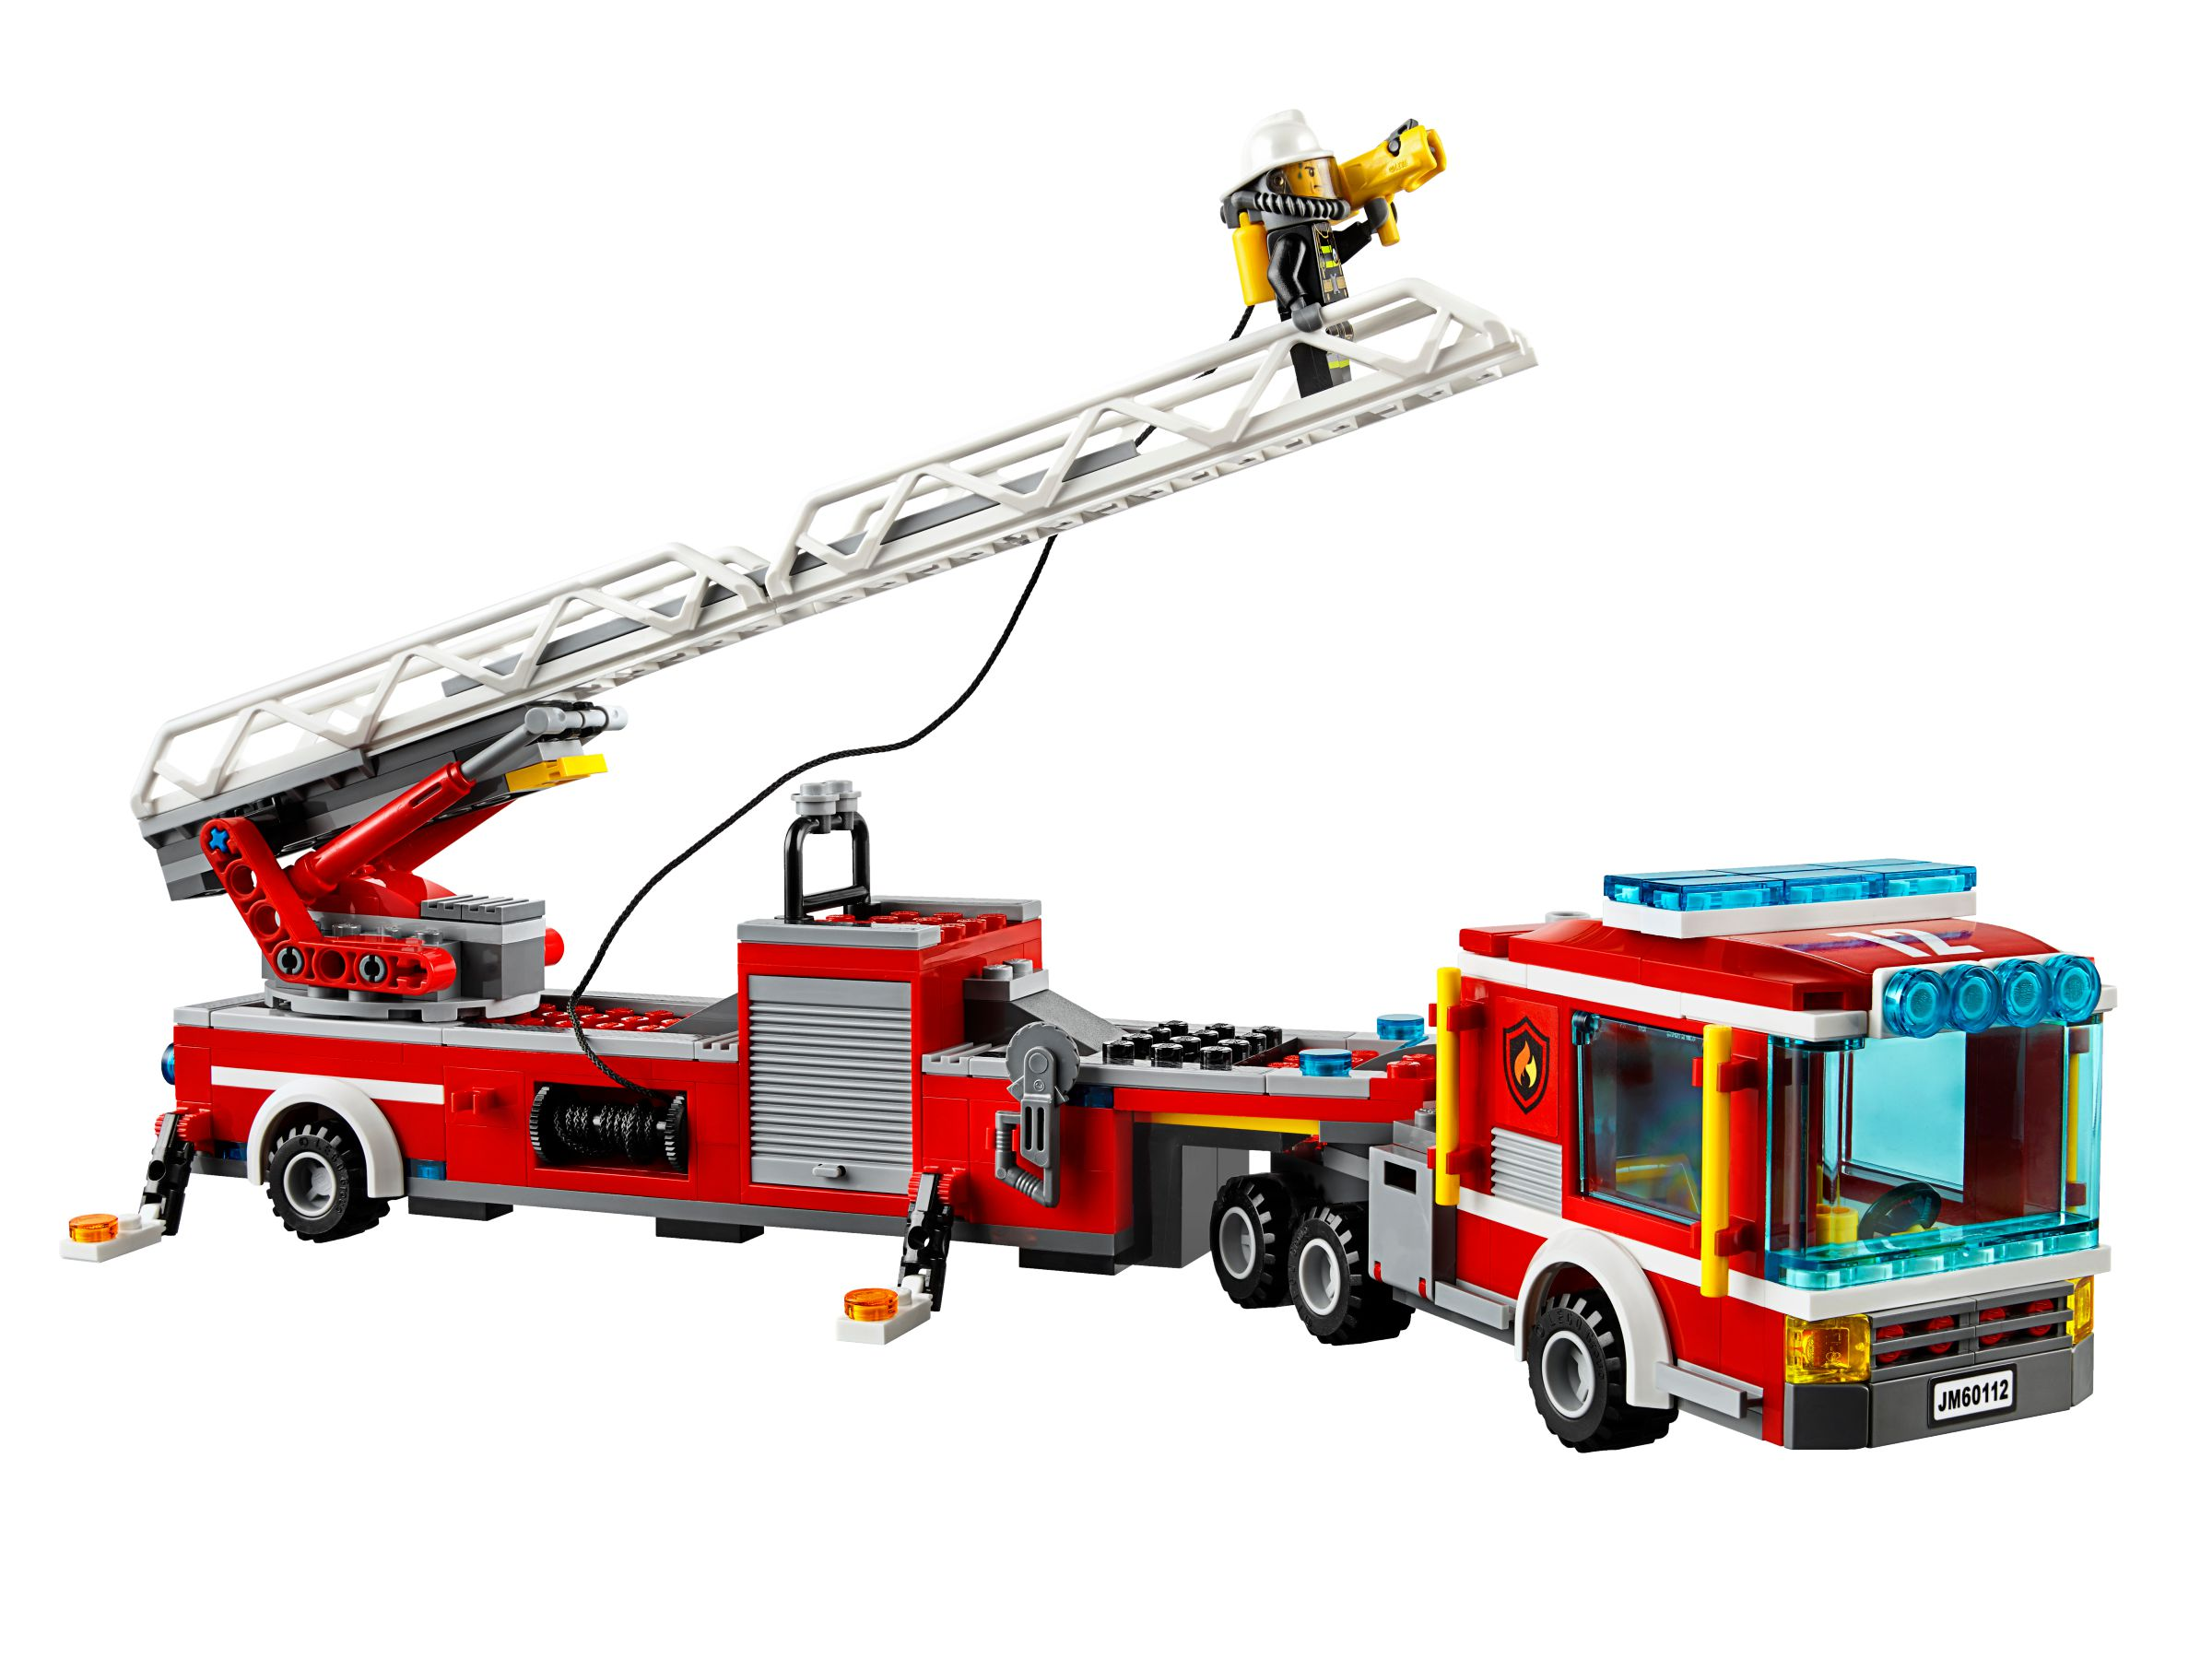 lego 60112 feuerwehrauto mit kran city 2016 fire engine brickmerge. Black Bedroom Furniture Sets. Home Design Ideas